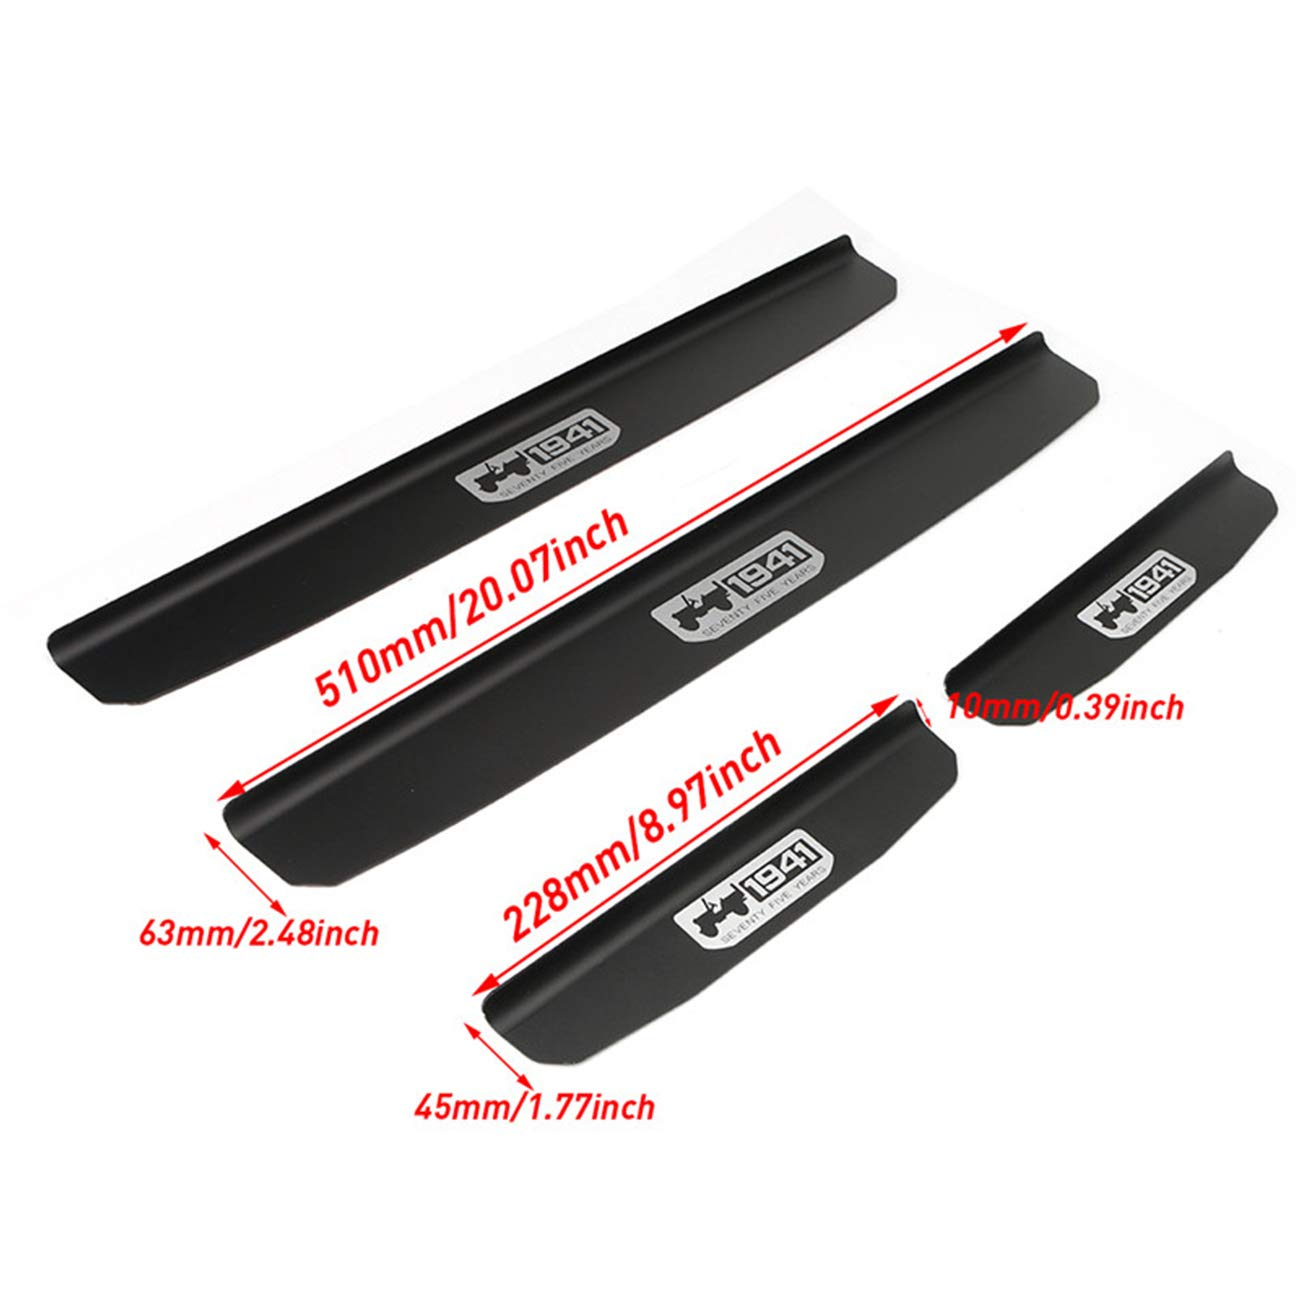 Aluminum Sill Guards /& Door Step Sill Scuff Plate Protectors 1941 Style for 2018-2019 Jeep Wrangler JL 4 Door